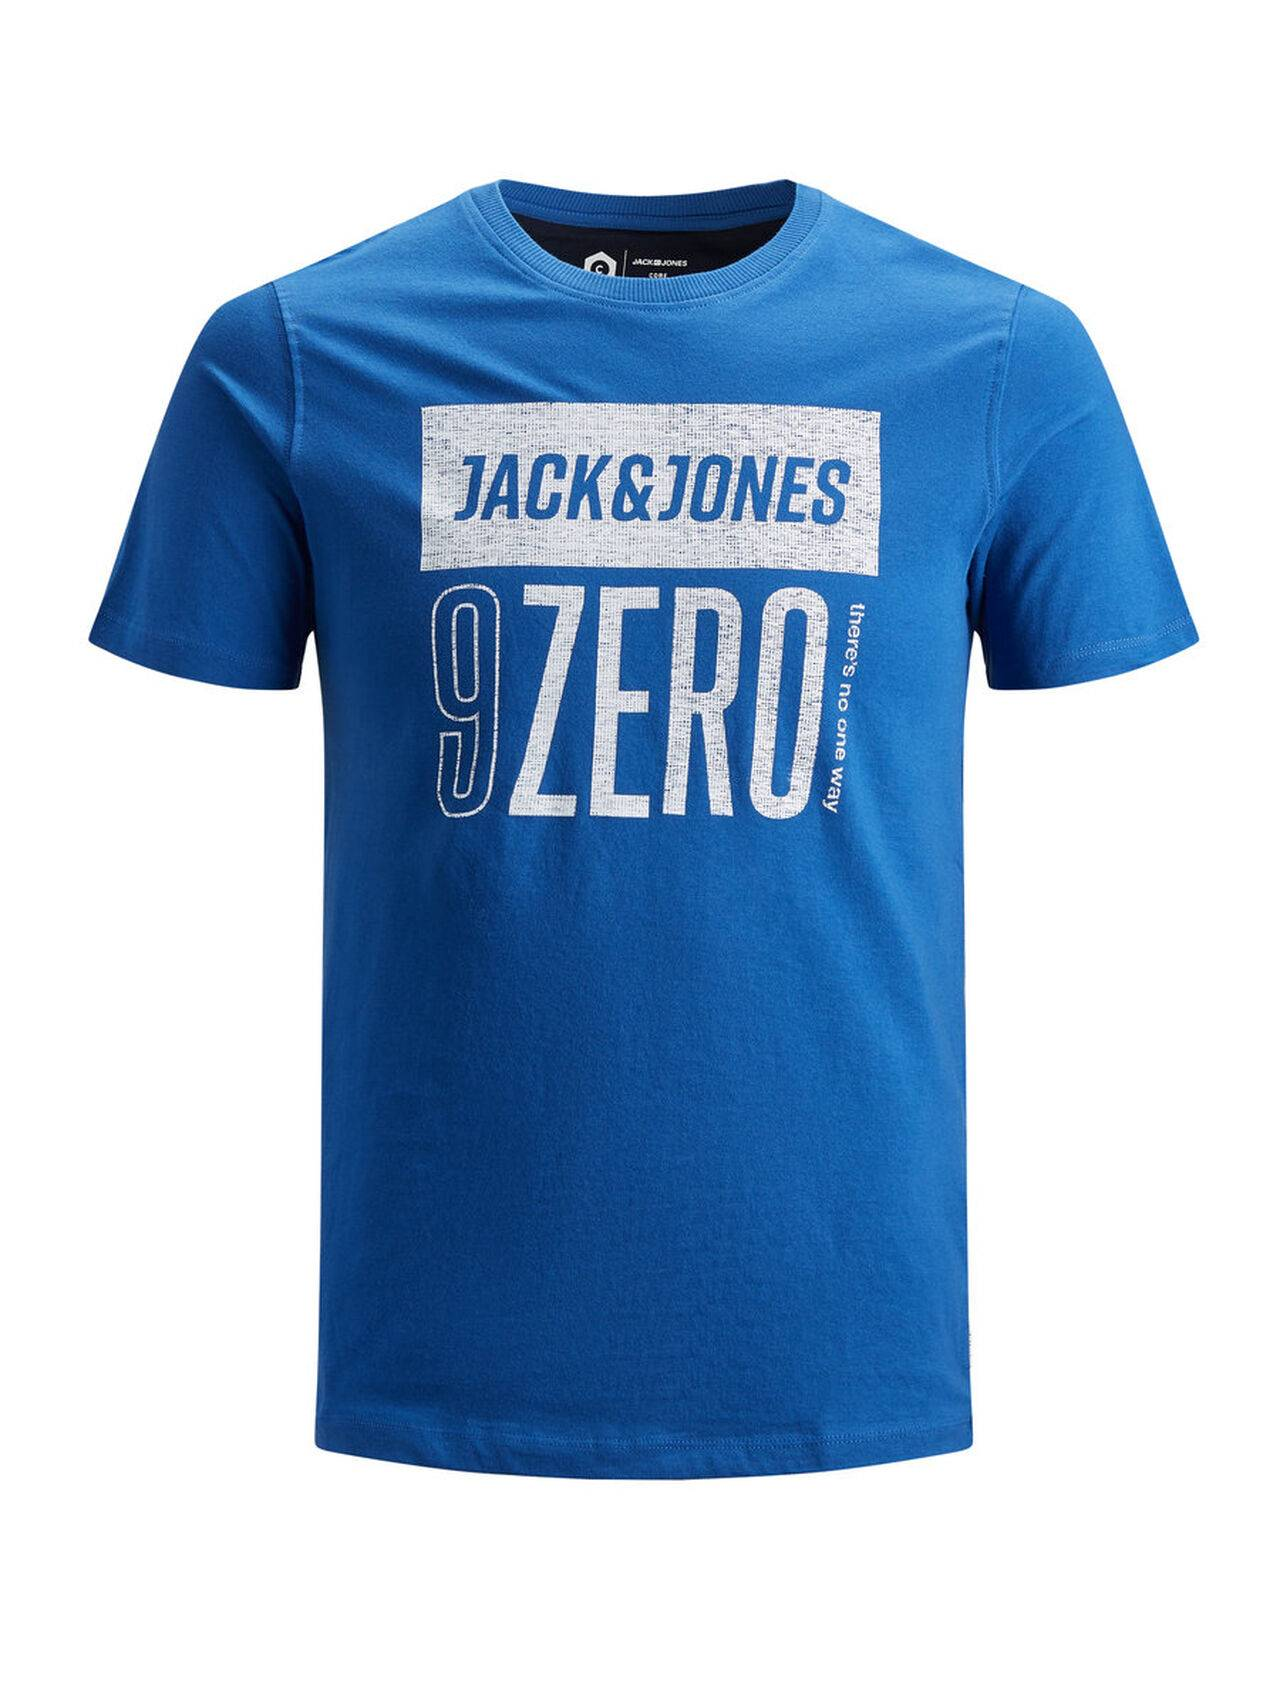 JACK & JONES Print T-shirt Men Blue ClassicBlue